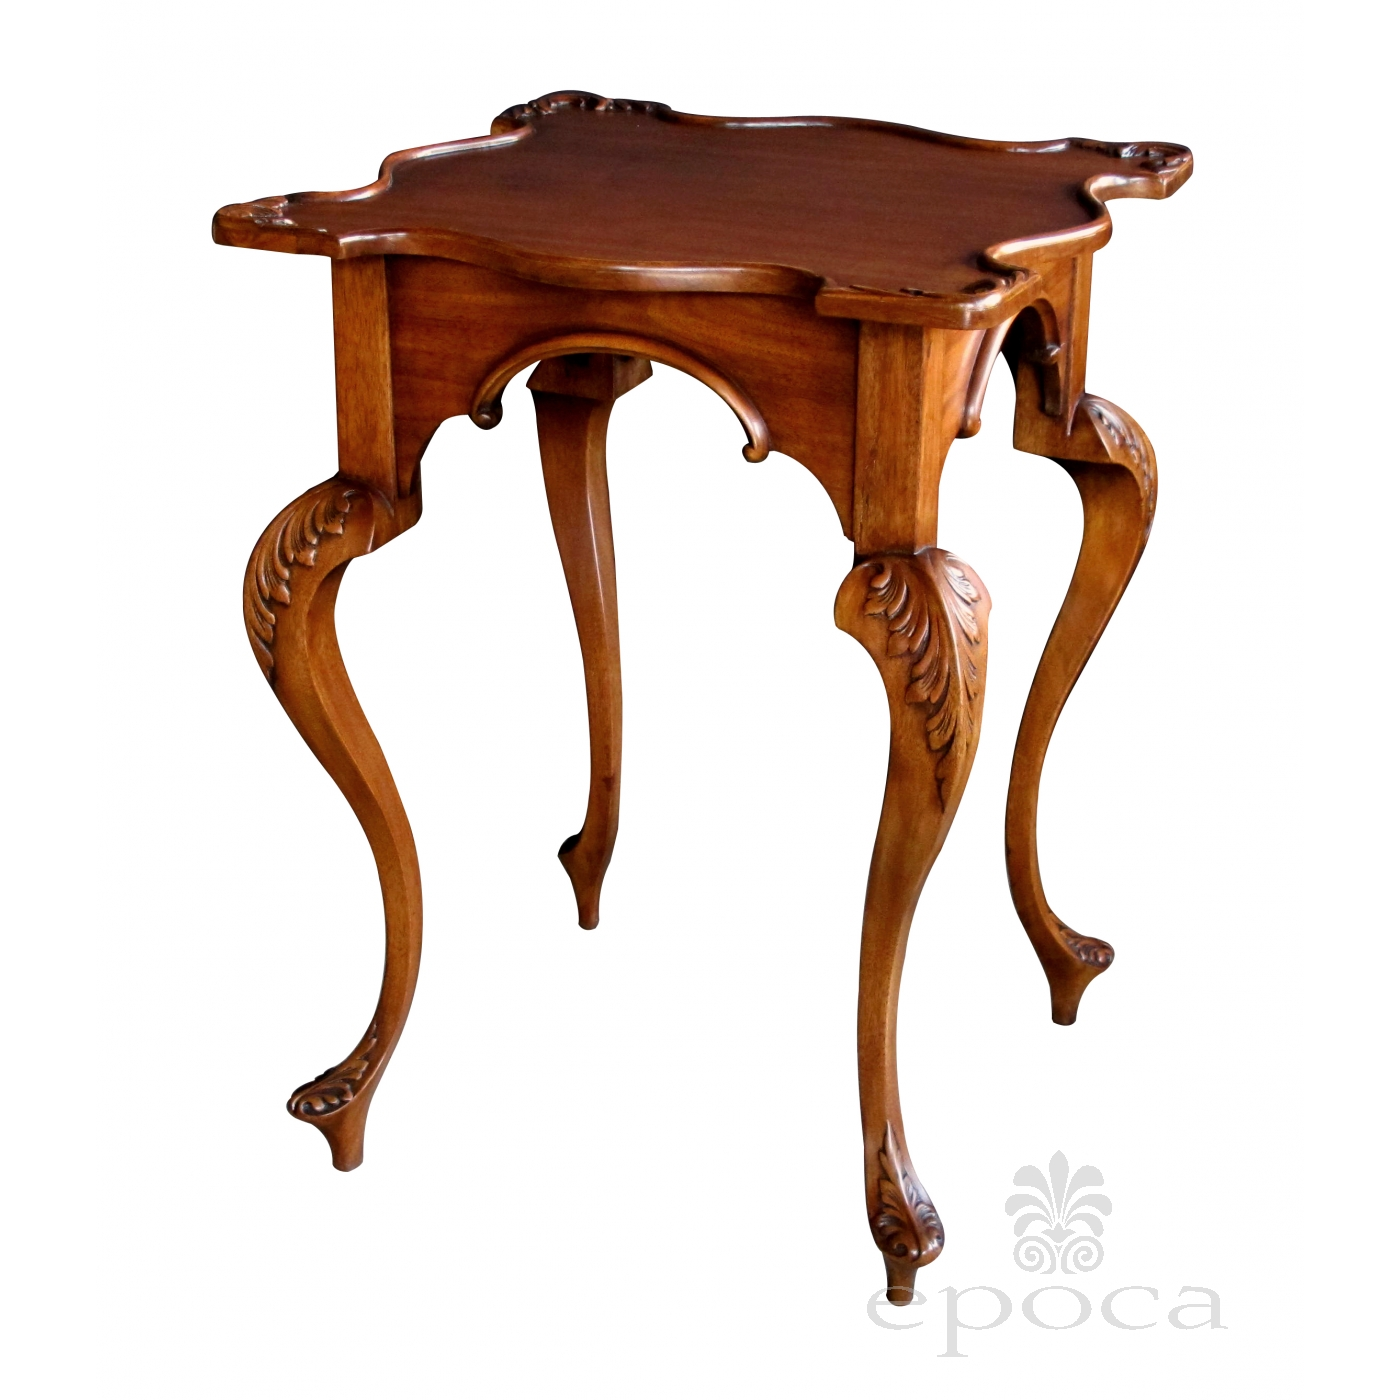 A Graceful English George Ii Style Carved Mahogany Side